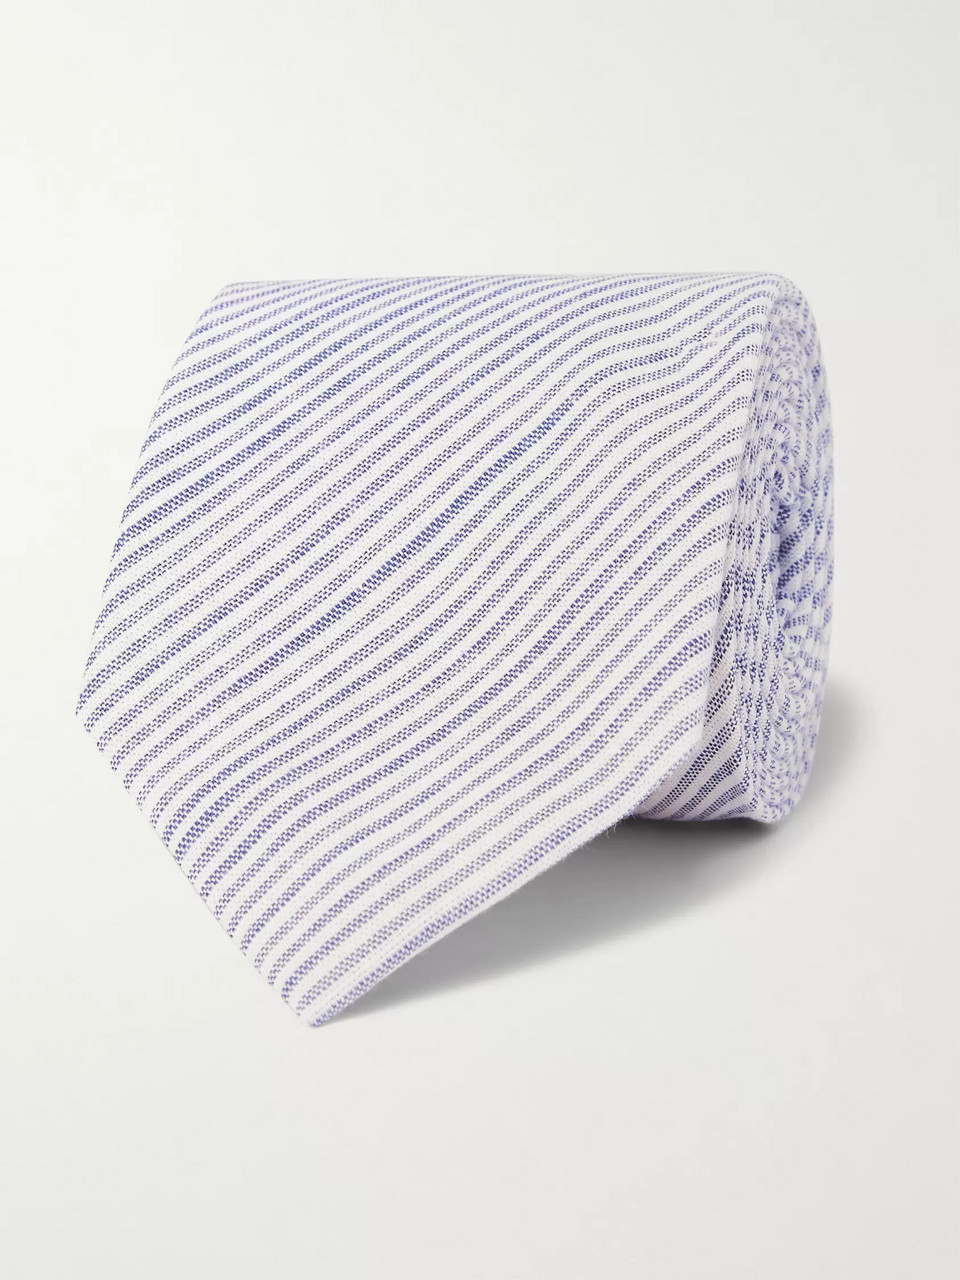 Oliver Spencer 8cm Conroy Striped Mélange Cotton Tie